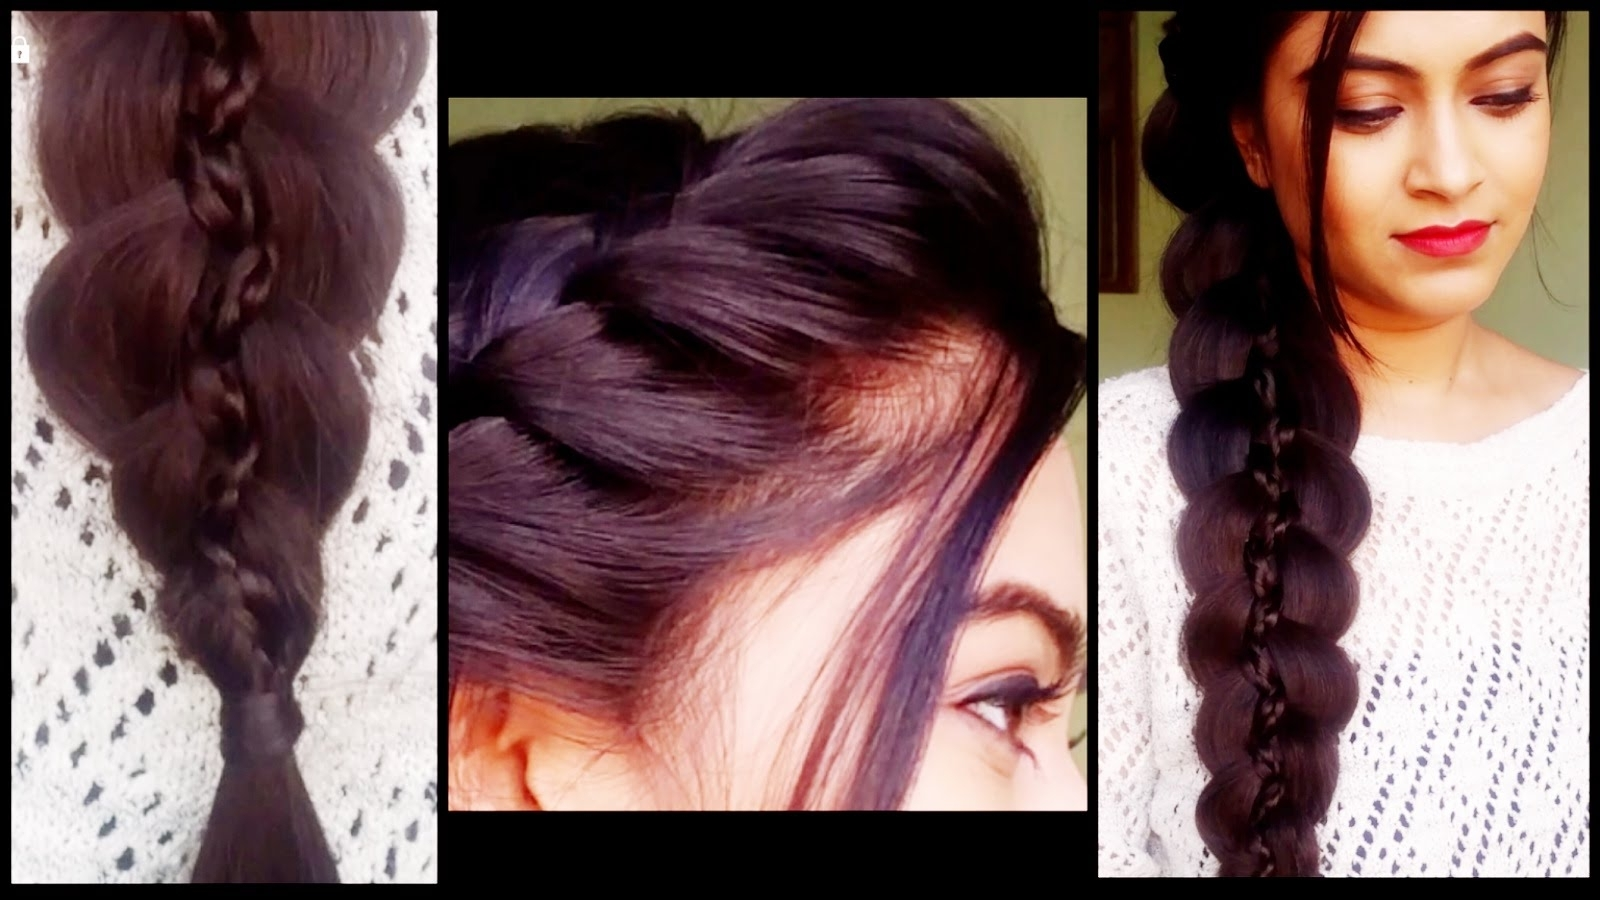 Newest Braided Hairstyles For Long Hair Indian Wedding With Regard To Braided 5 Strand Braid – Hairstyles For Medium/long Hair Prom (View 12 of 15)